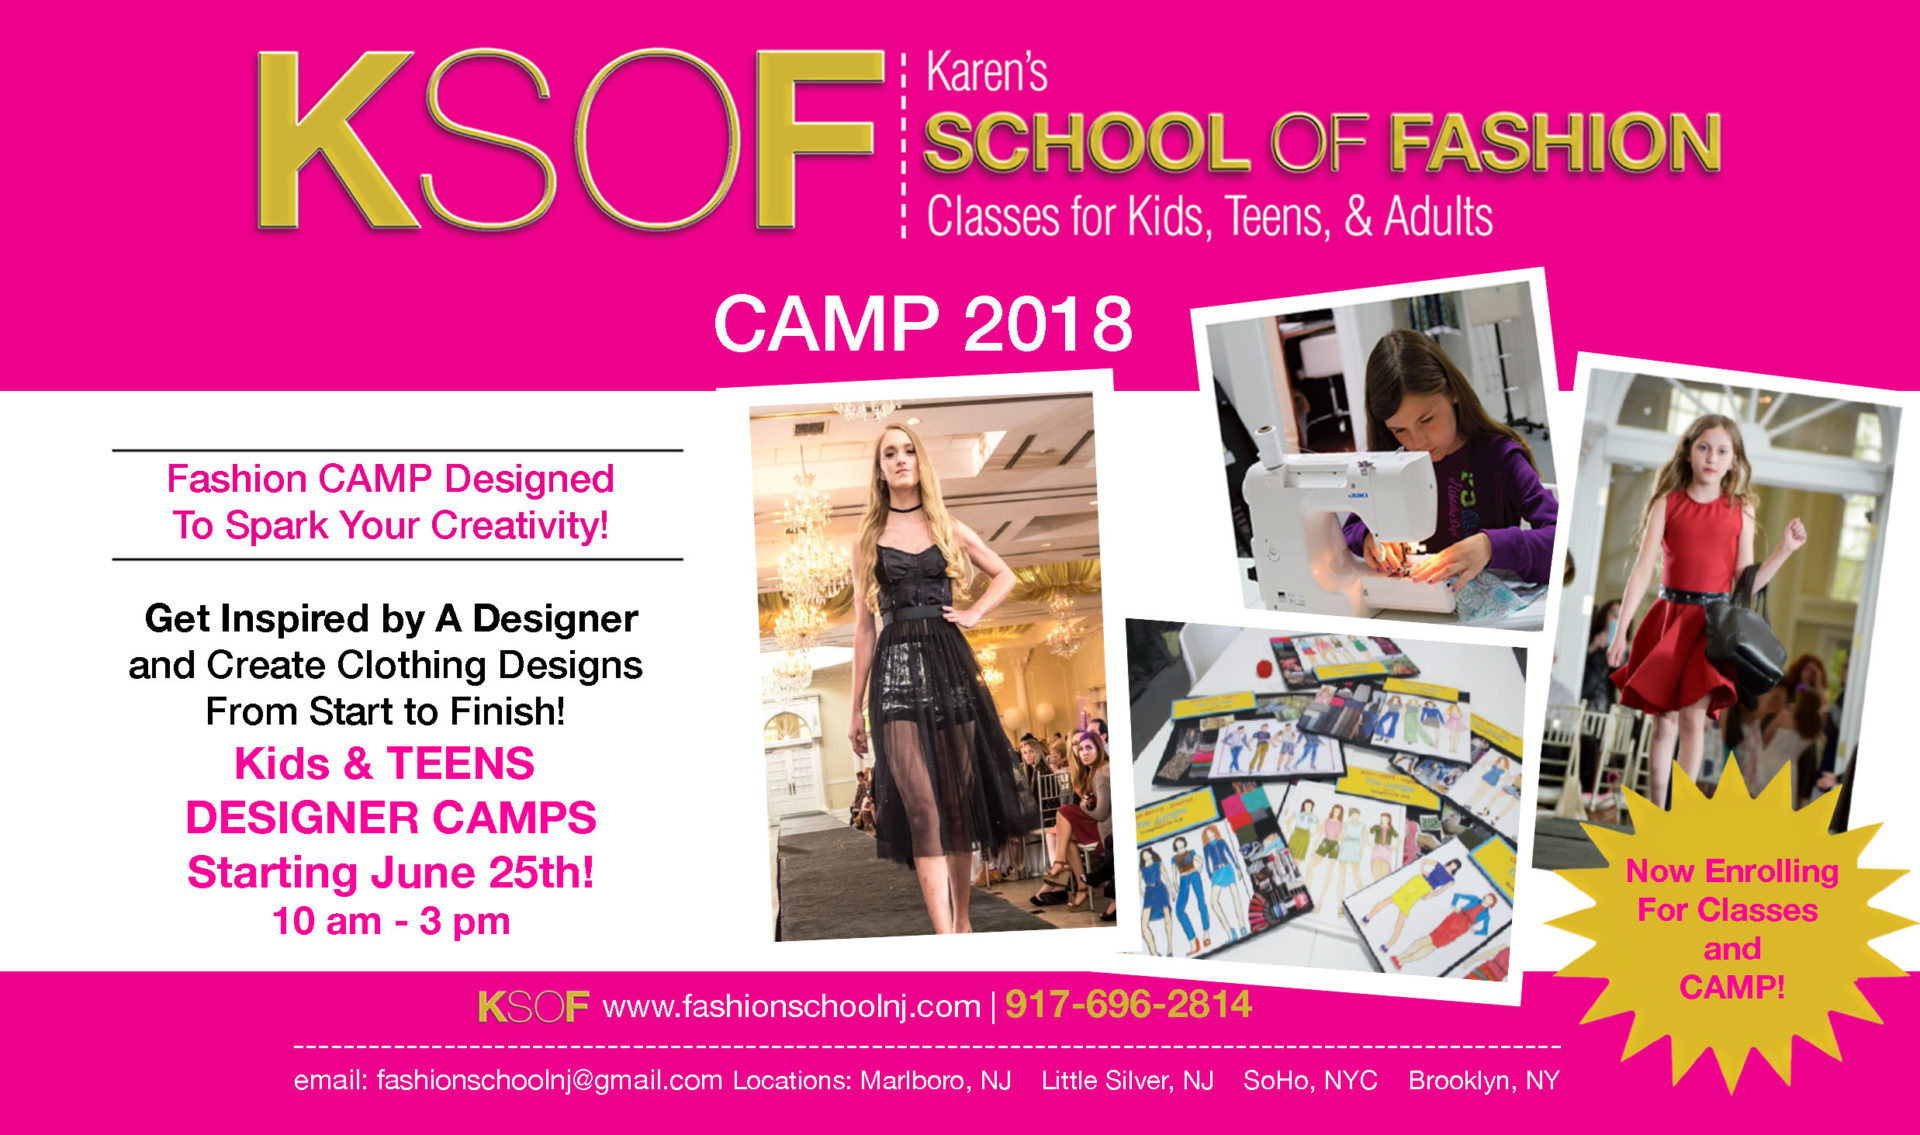 Summer Camp 2018 Discount New Students Ksof Karen S School Of Fashion Sewing And Fashion Design In Ny And Nj